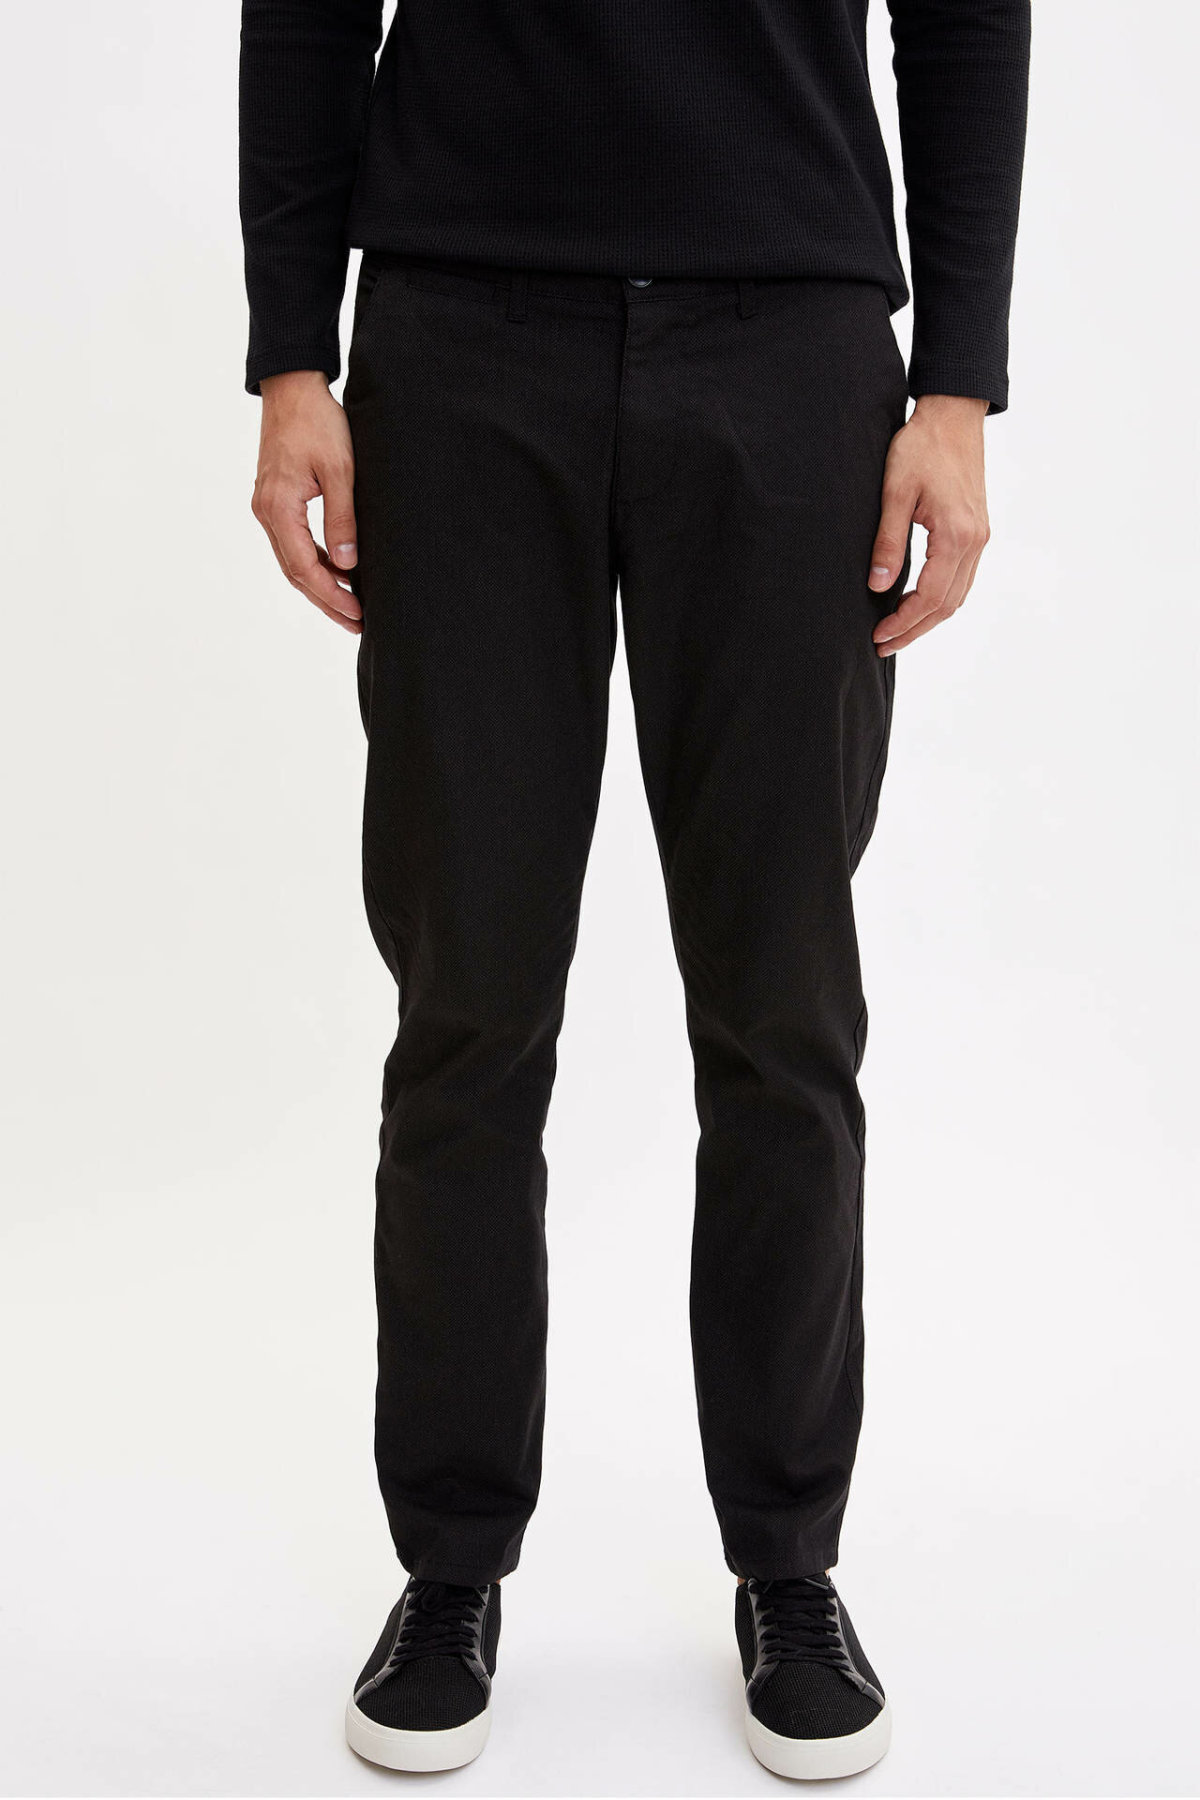 DeFacto Man Summer Straight Long Pants Men Smart Casual Black Bottoms Male Formal Cargo Pants Trousers-L1541AZ19SM